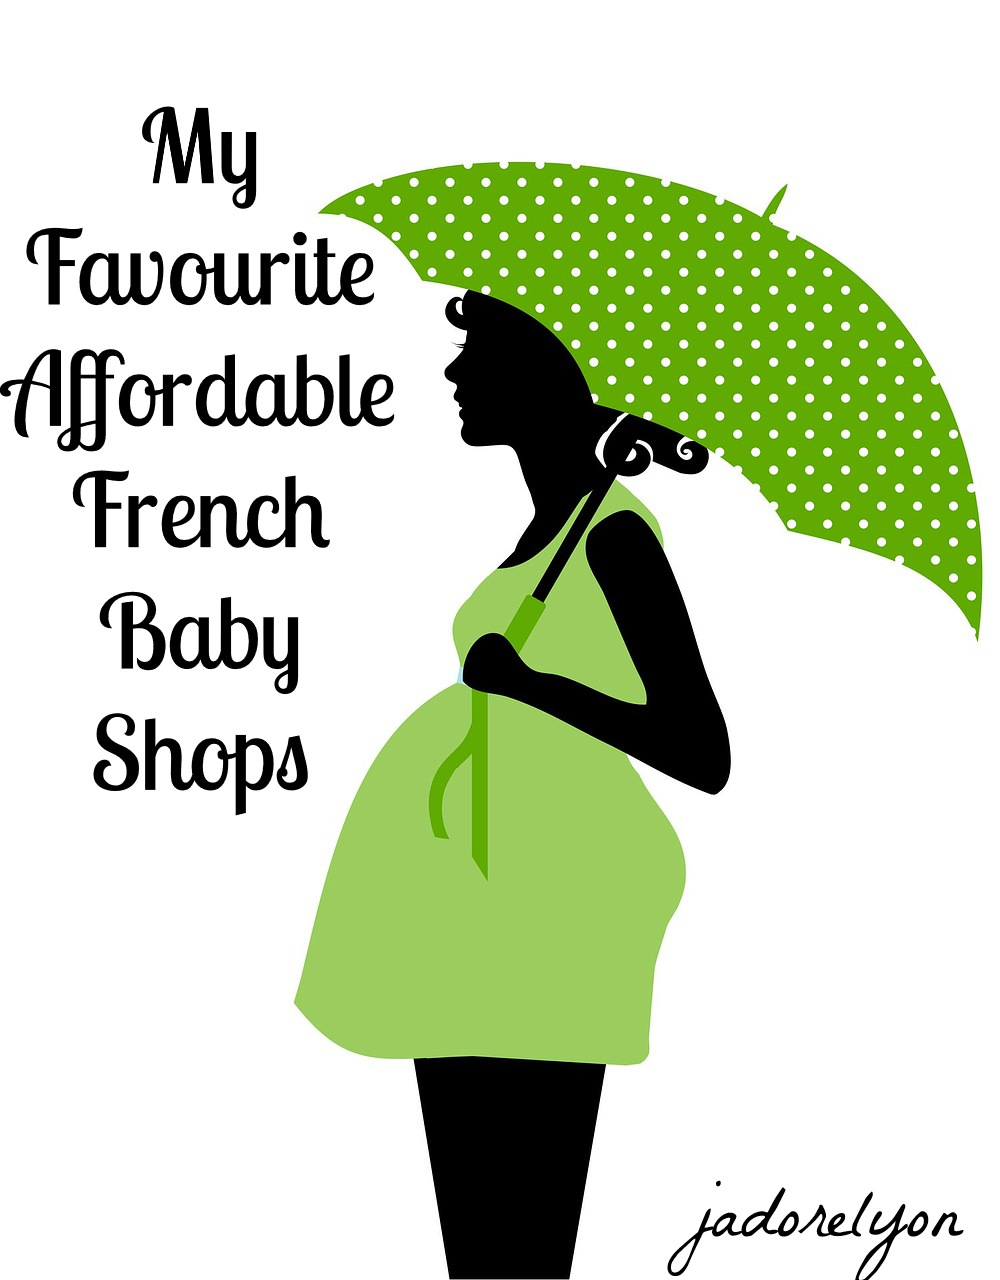 My Favourite Affordable French Baby Shops1